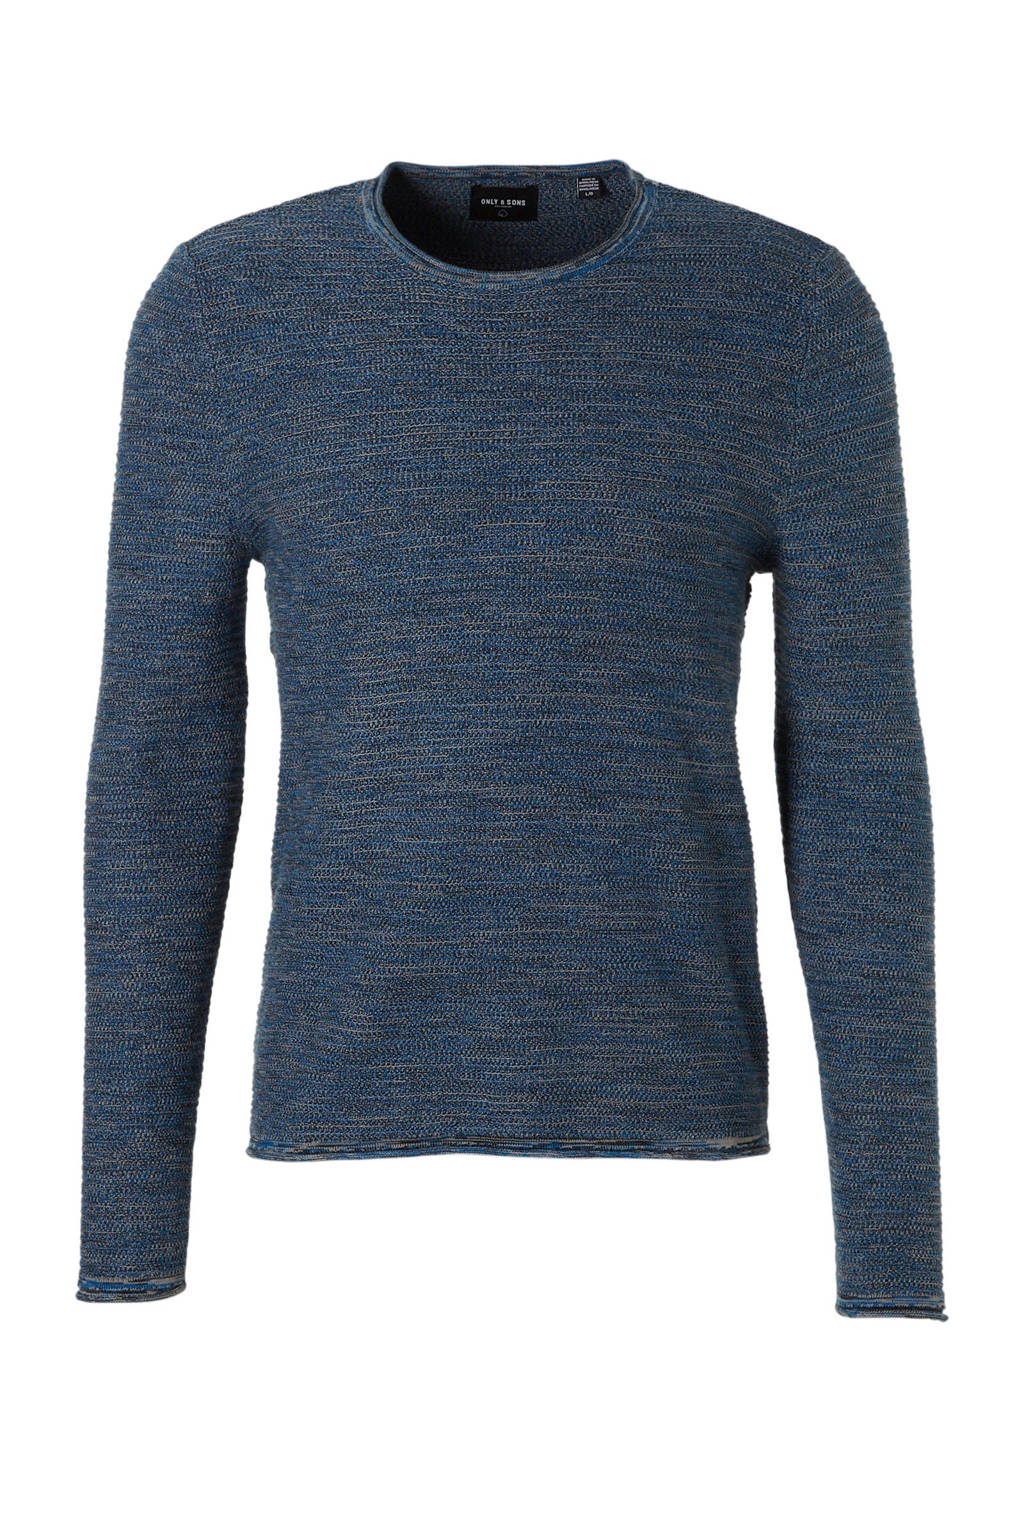 Only & Sons trui, Blauw/wit